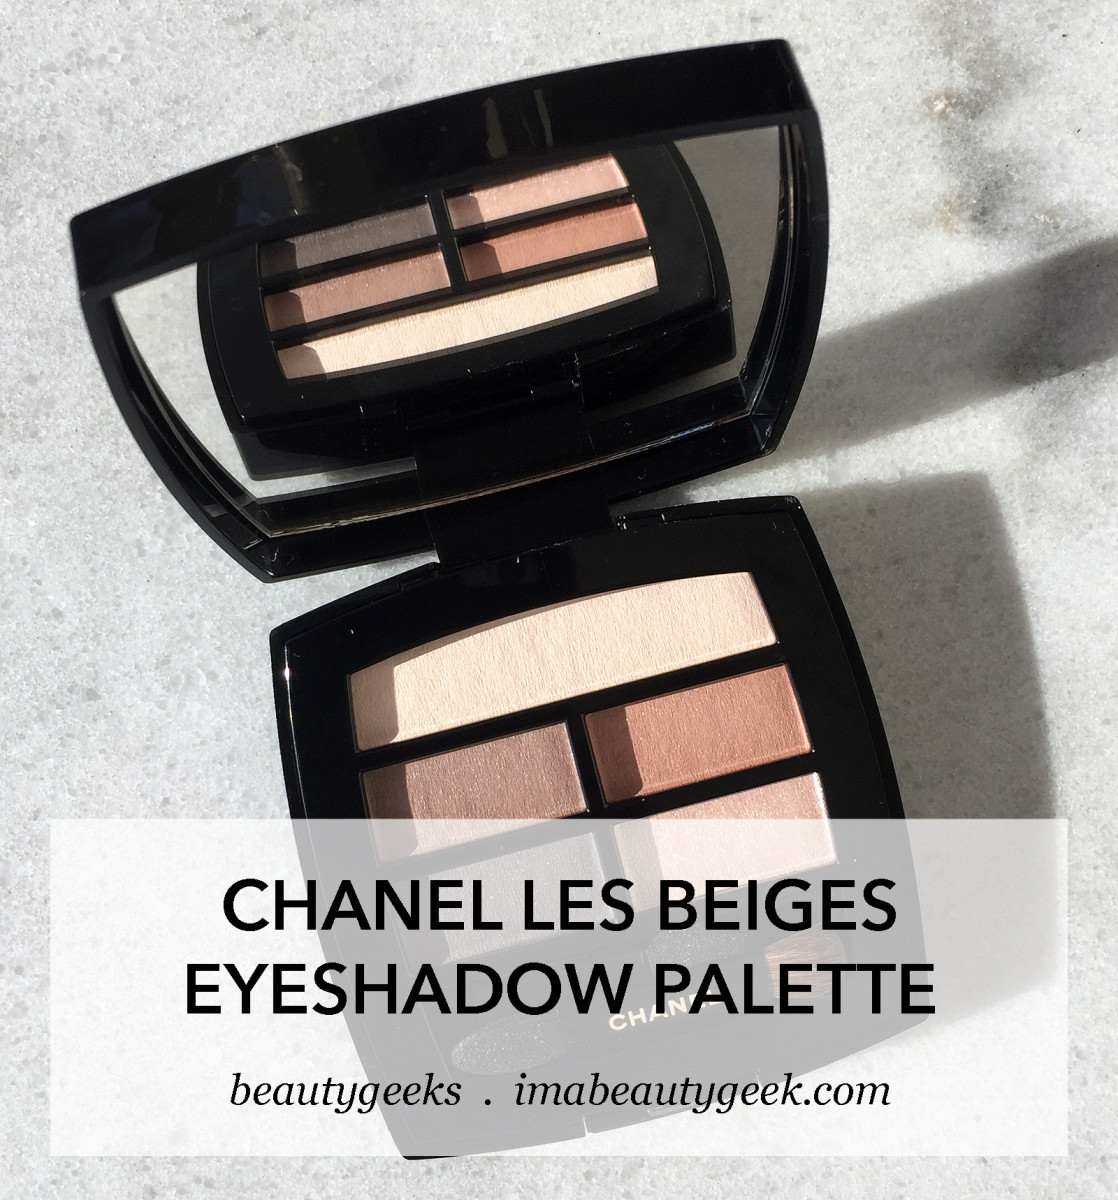 Chanel Les Beiges Eyeshadow Palette – we don't have to wait until October 2017 anymore; it'll be available in North America in July instead. (photo: Liza Herz)